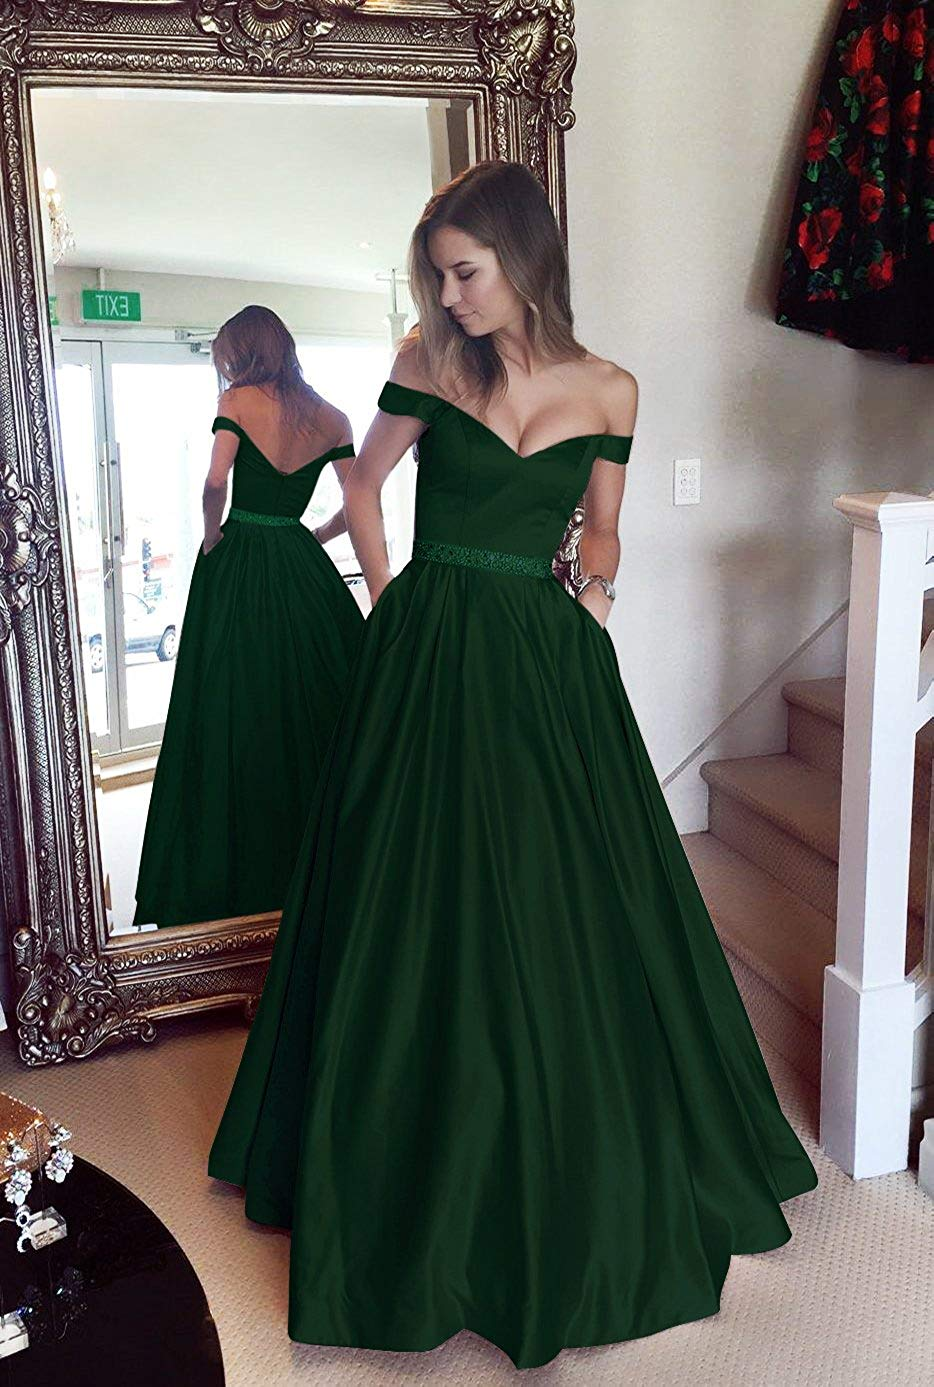 abb724b603 Dressytailor Long Satin Emerald Green Off the Shoulder Prom Dress Formal  Evening Gown with Pockets